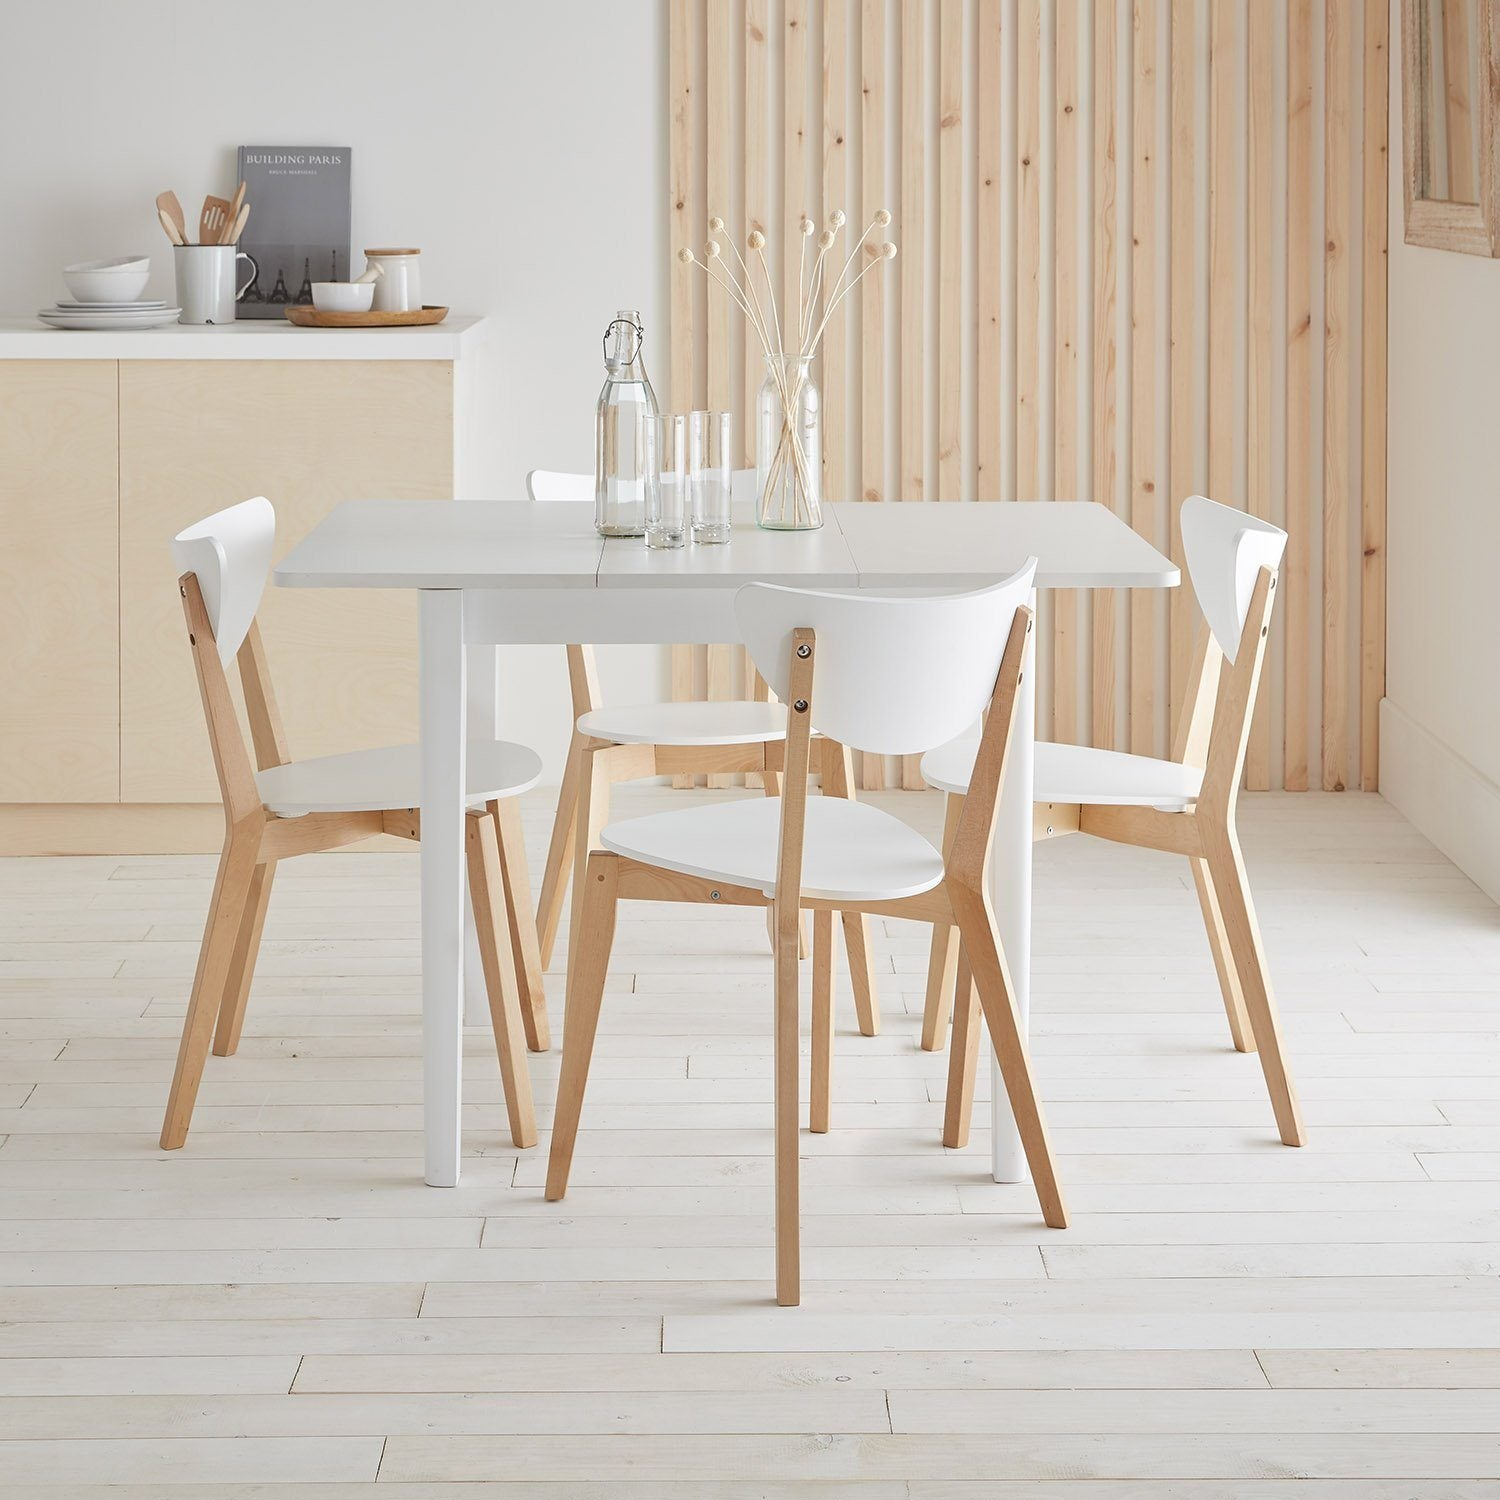 Paul extendable table with 4 chairs - small - white